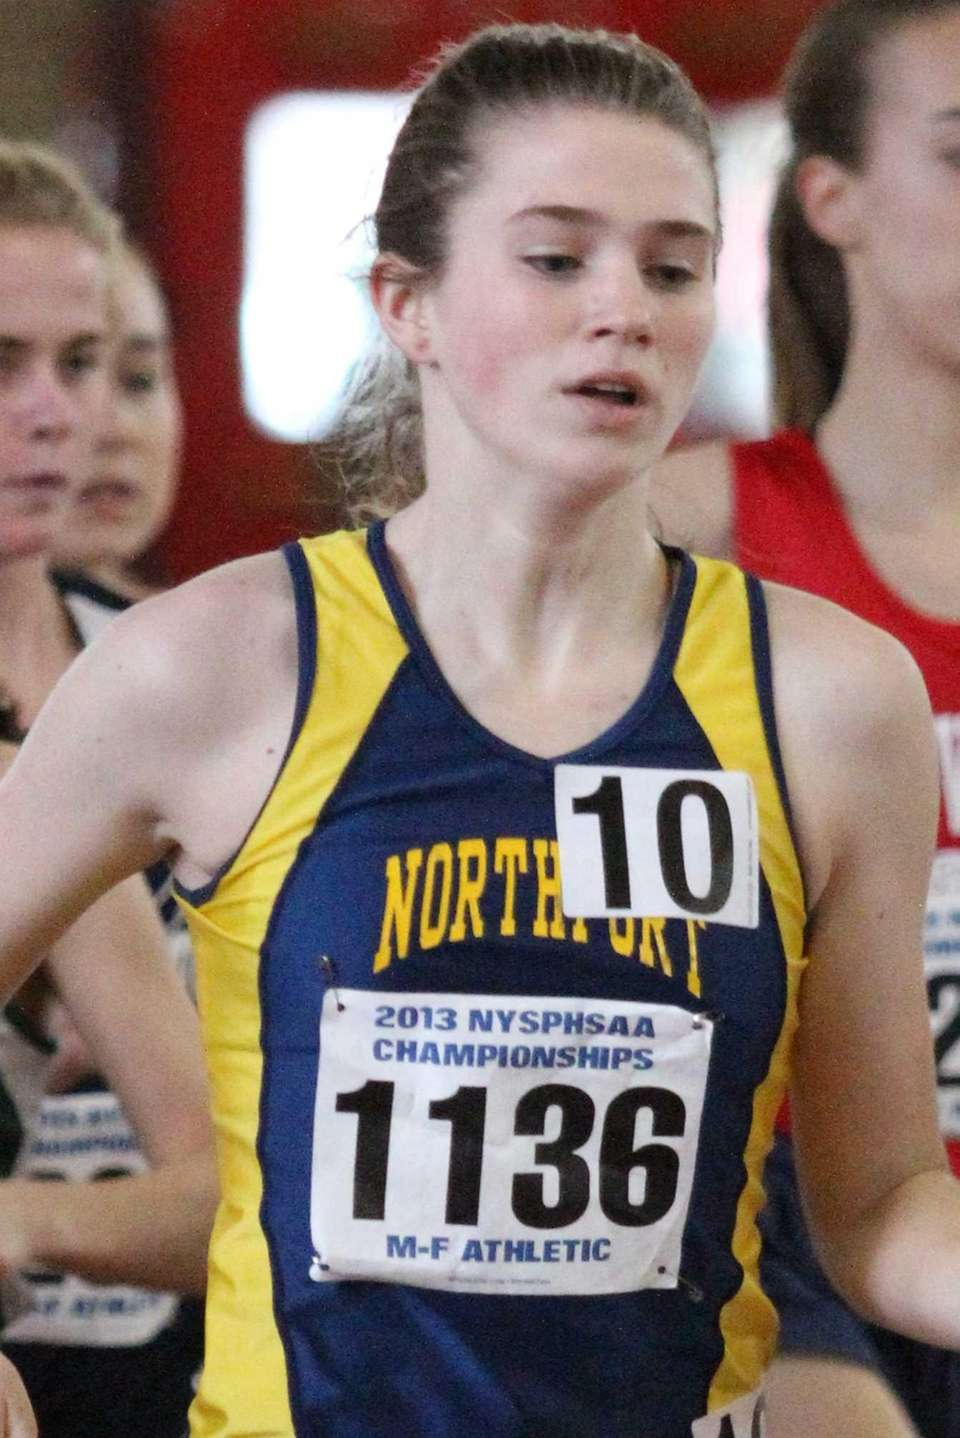 Northport's Brigid Brennan competes in the 3000 meter